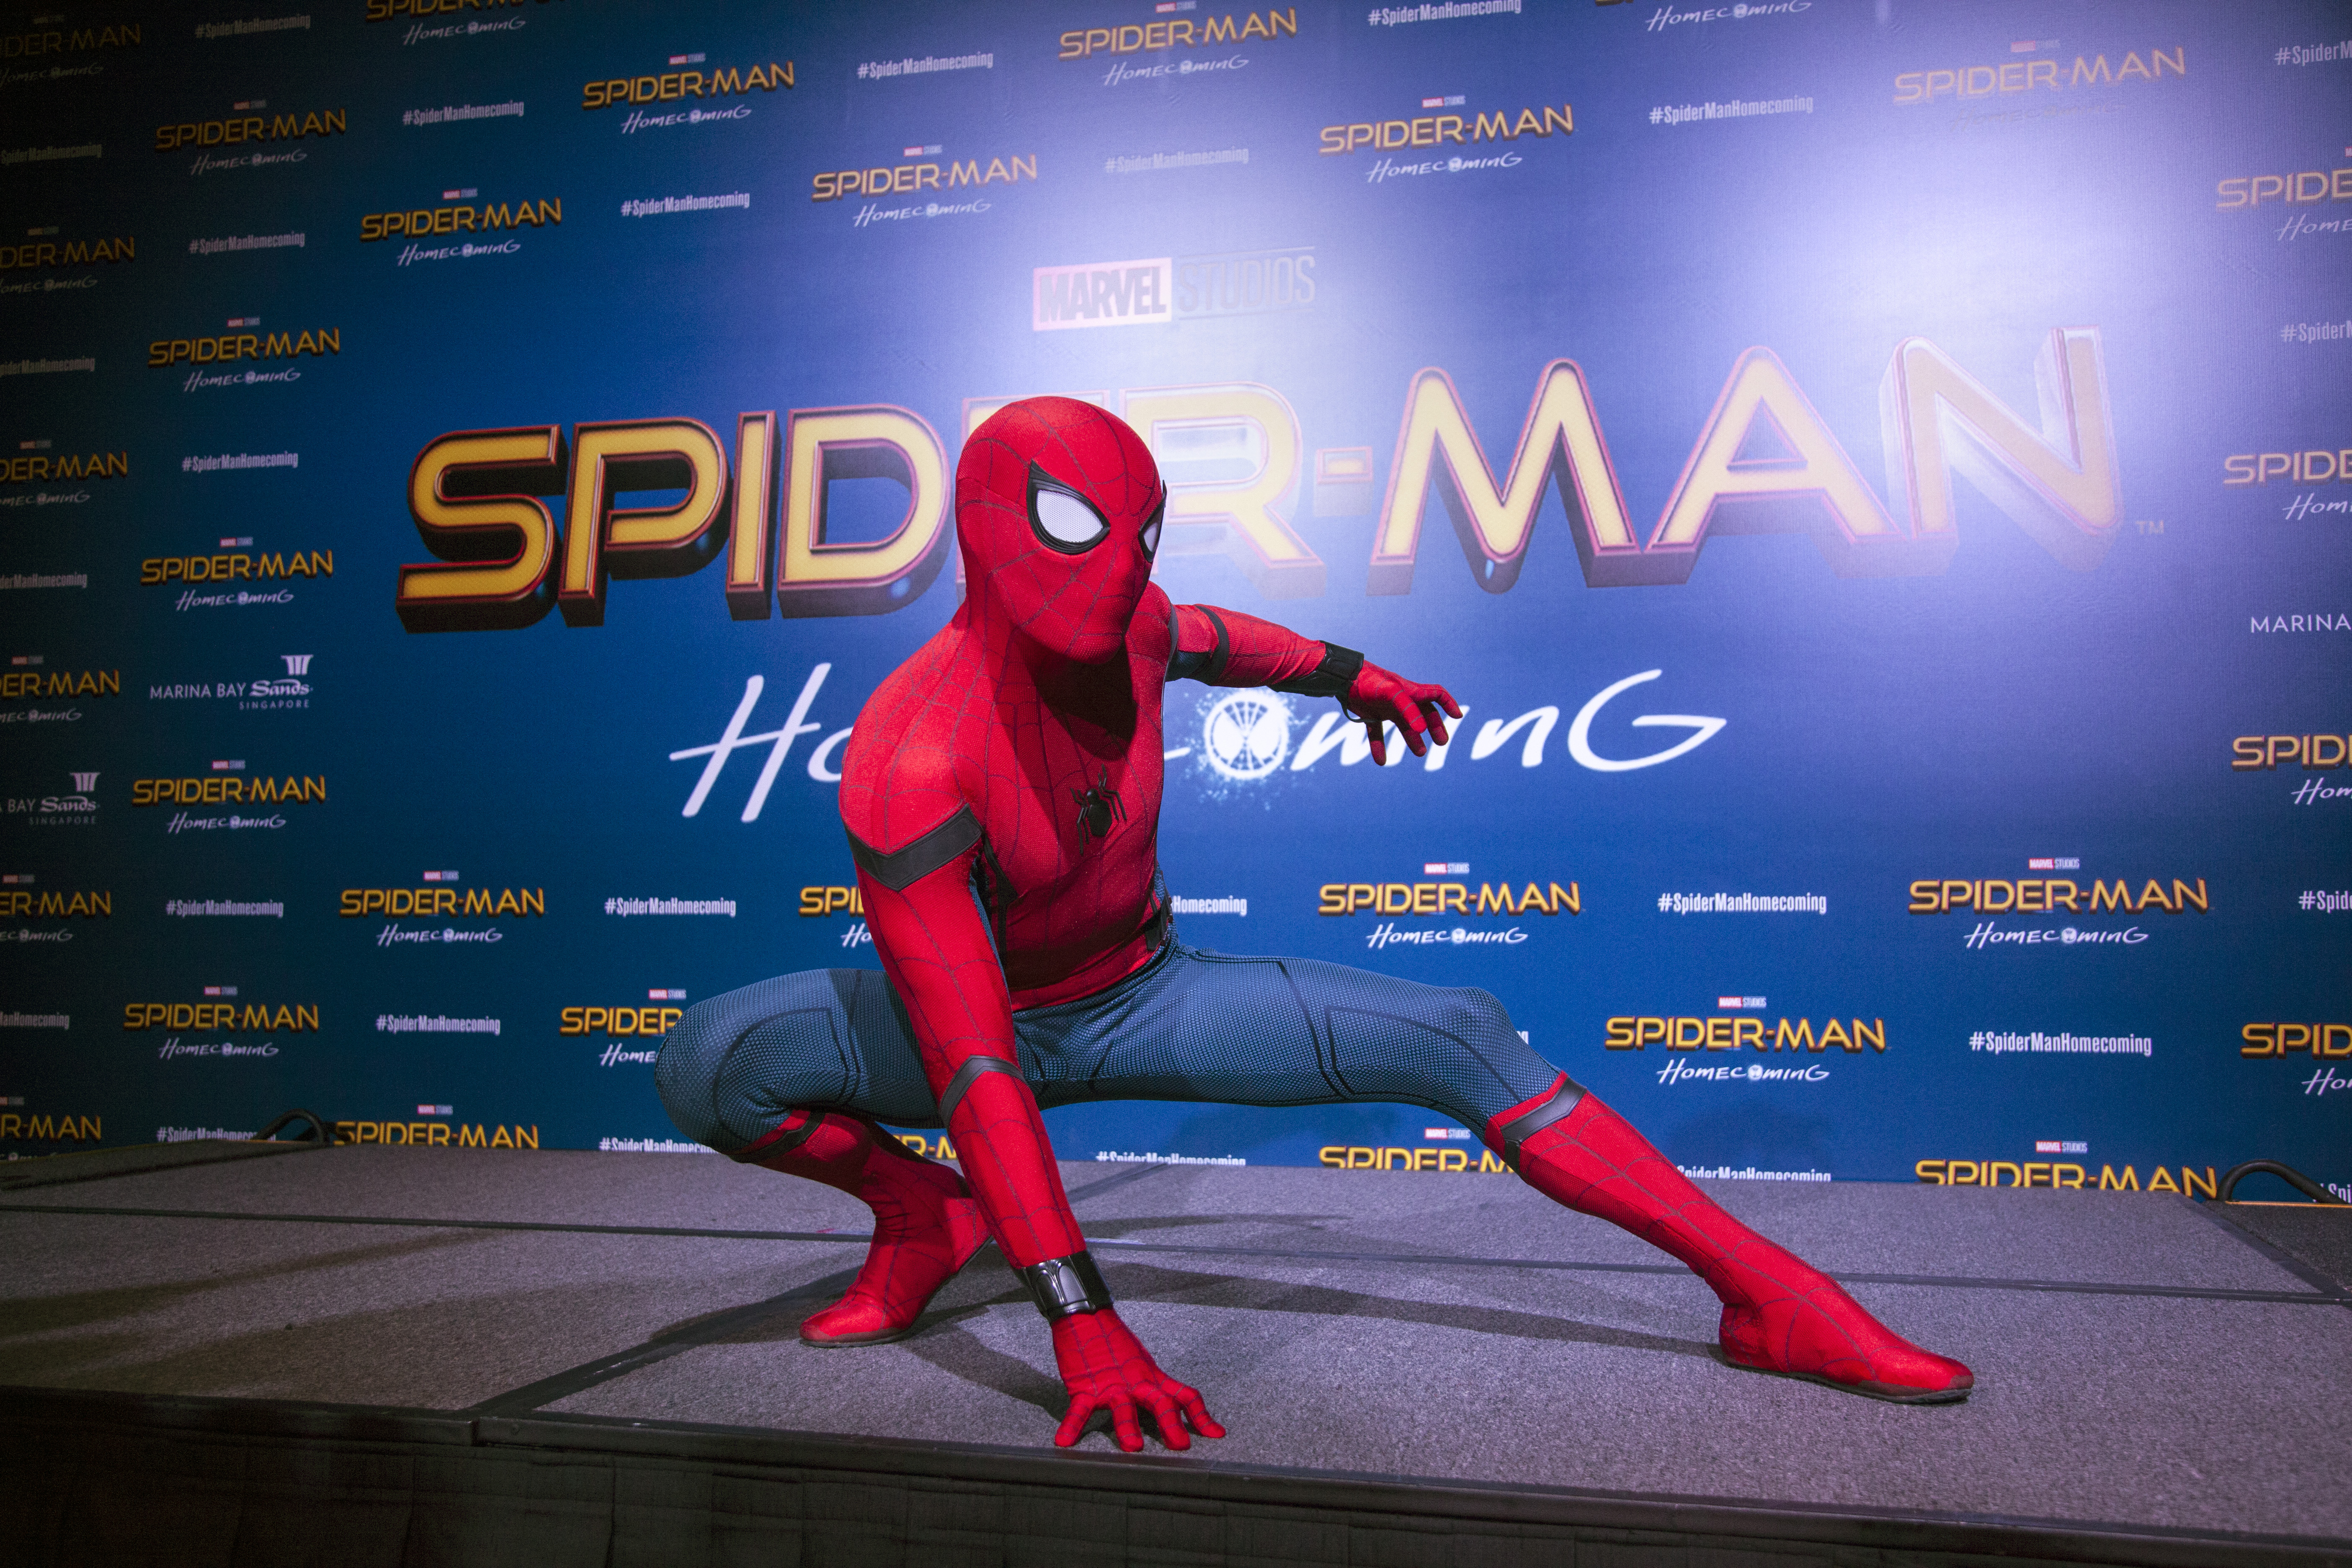 52 4k Ultra Hd Spider Man Homecoming Wallpapers